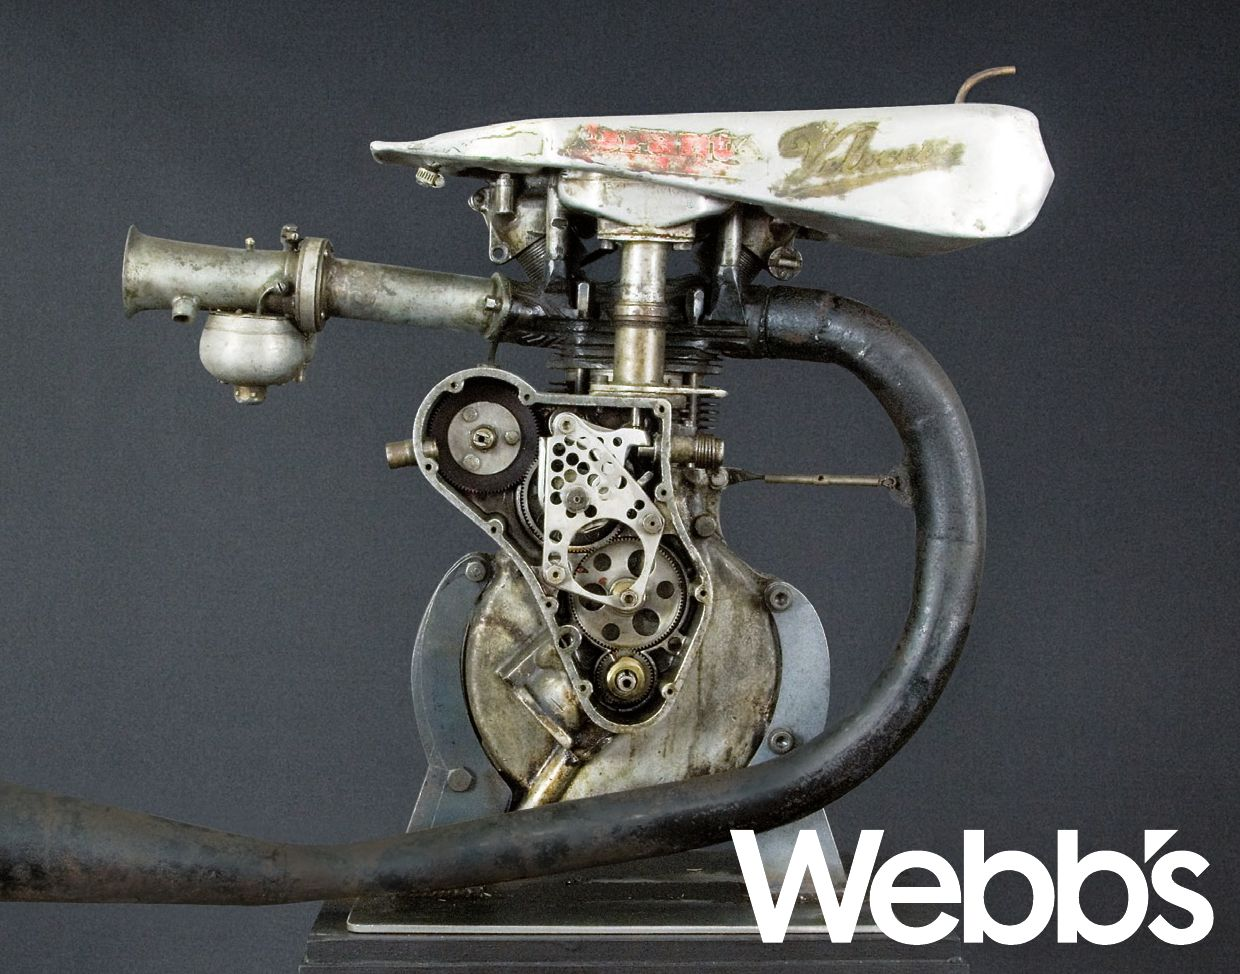 Webb's Important Vintage and collectable motorcycles by